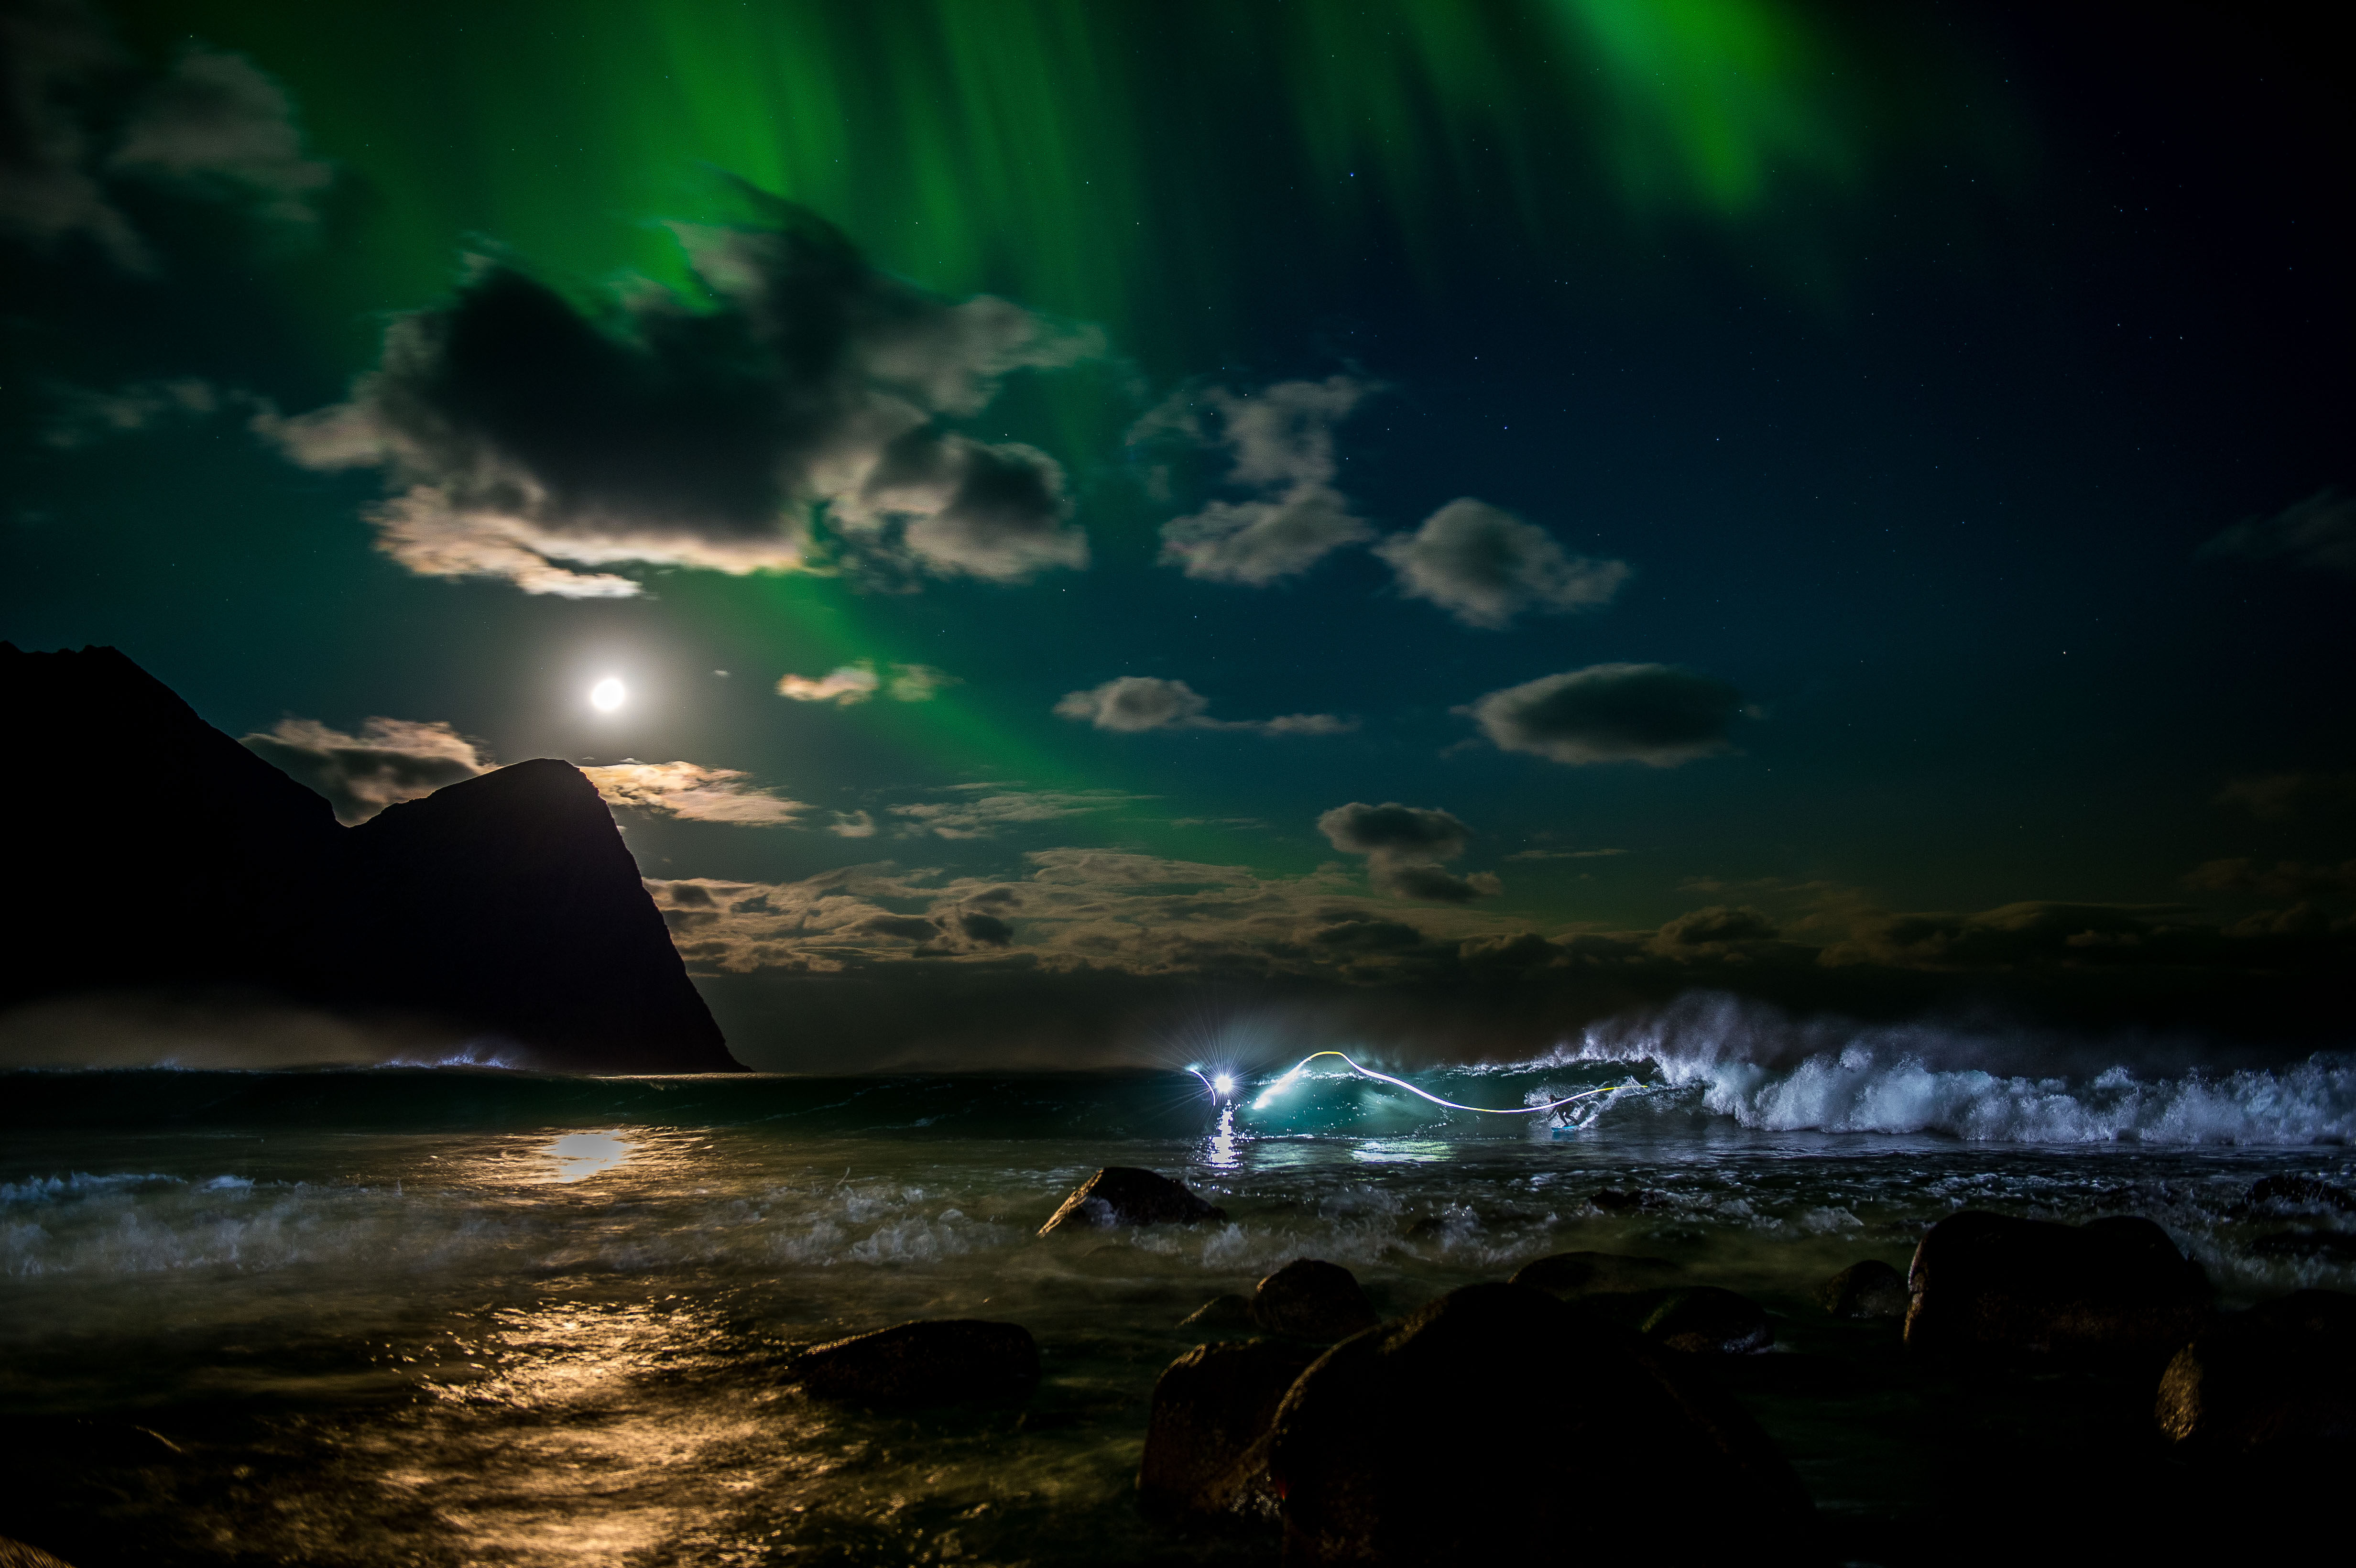 Mick Fanning is surfing in the colorful nights of Lofoten, Norway on Nov. 10, 2016. (Trevor Moran / Red Bull Content Pool)